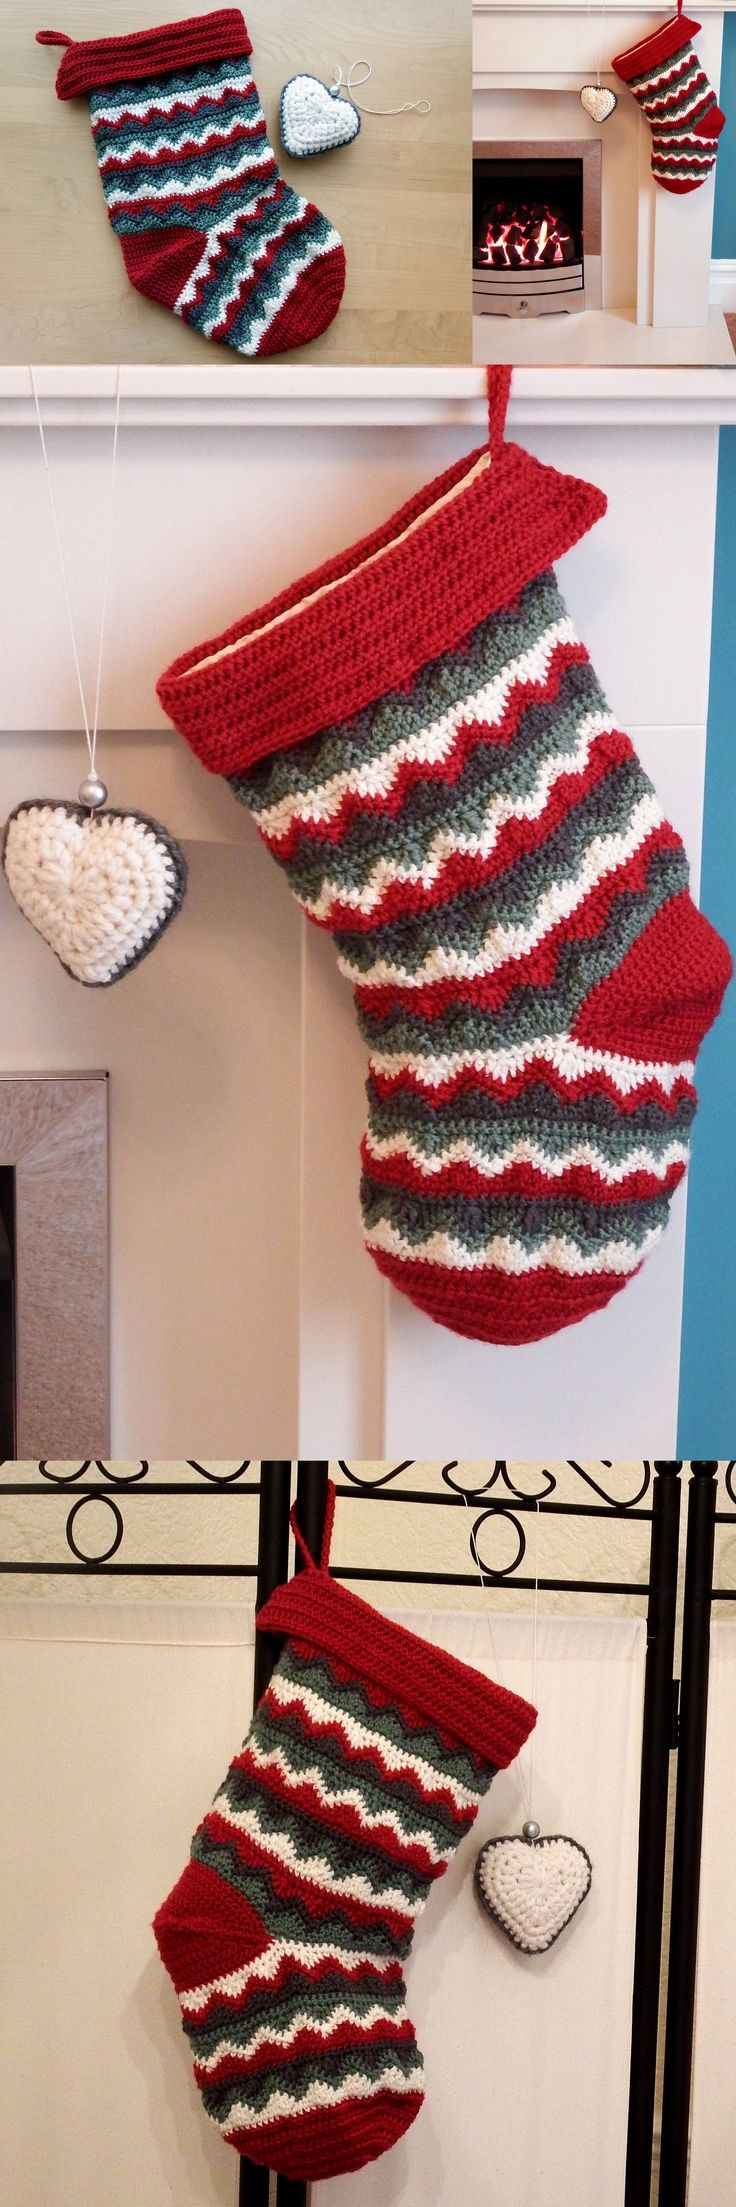 best 25 stocking hooks ideas on pinterest stocking holders for